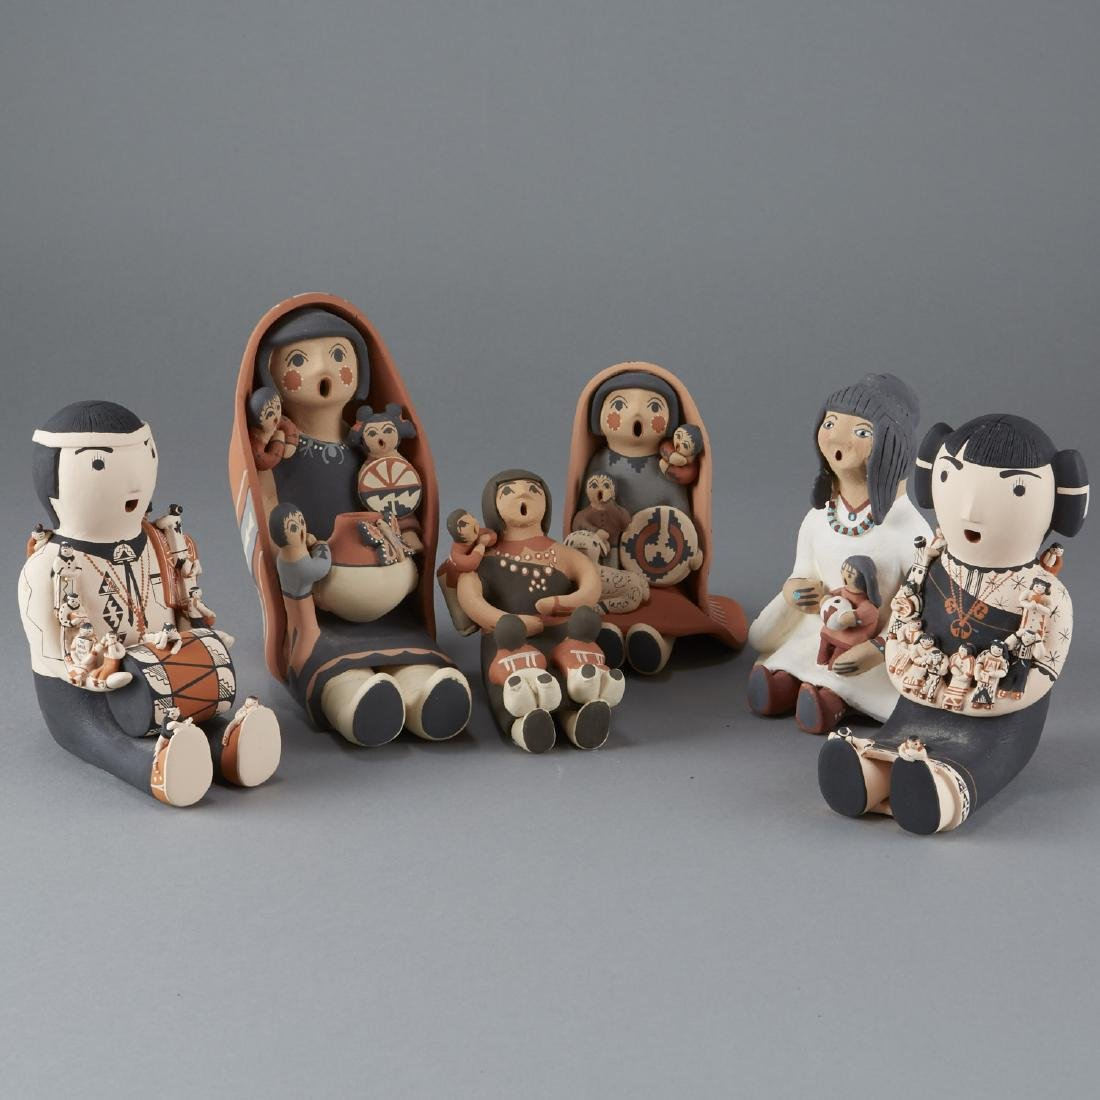 6 Ceramic Pieces Groups of Native American Women